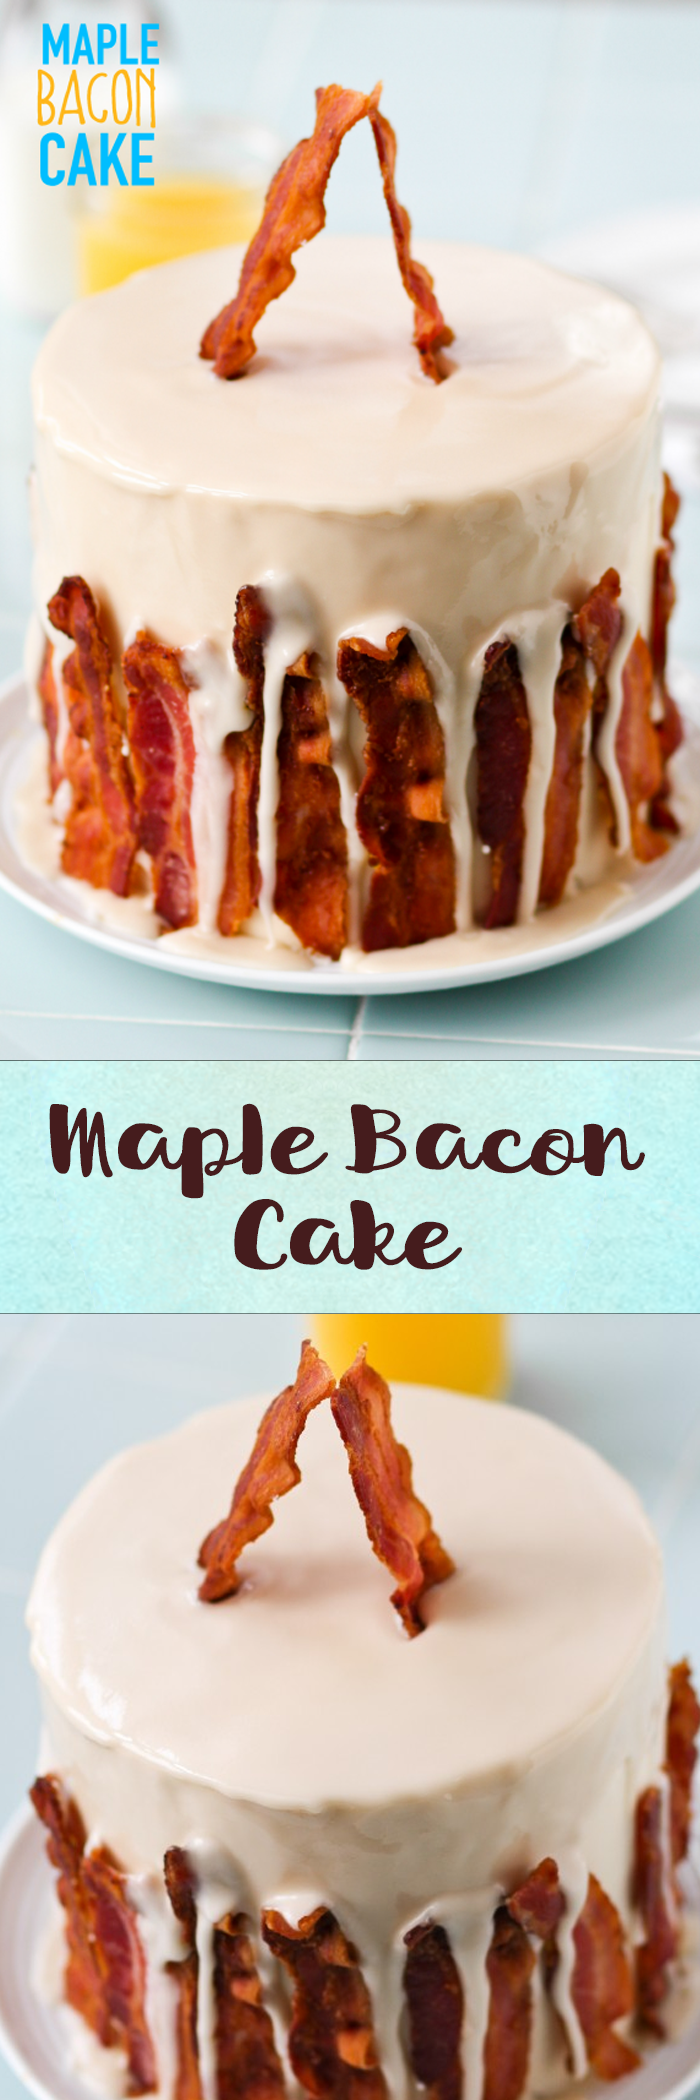 Maple Bacon Cake Can I Have This For Breakfast Love This Flavor